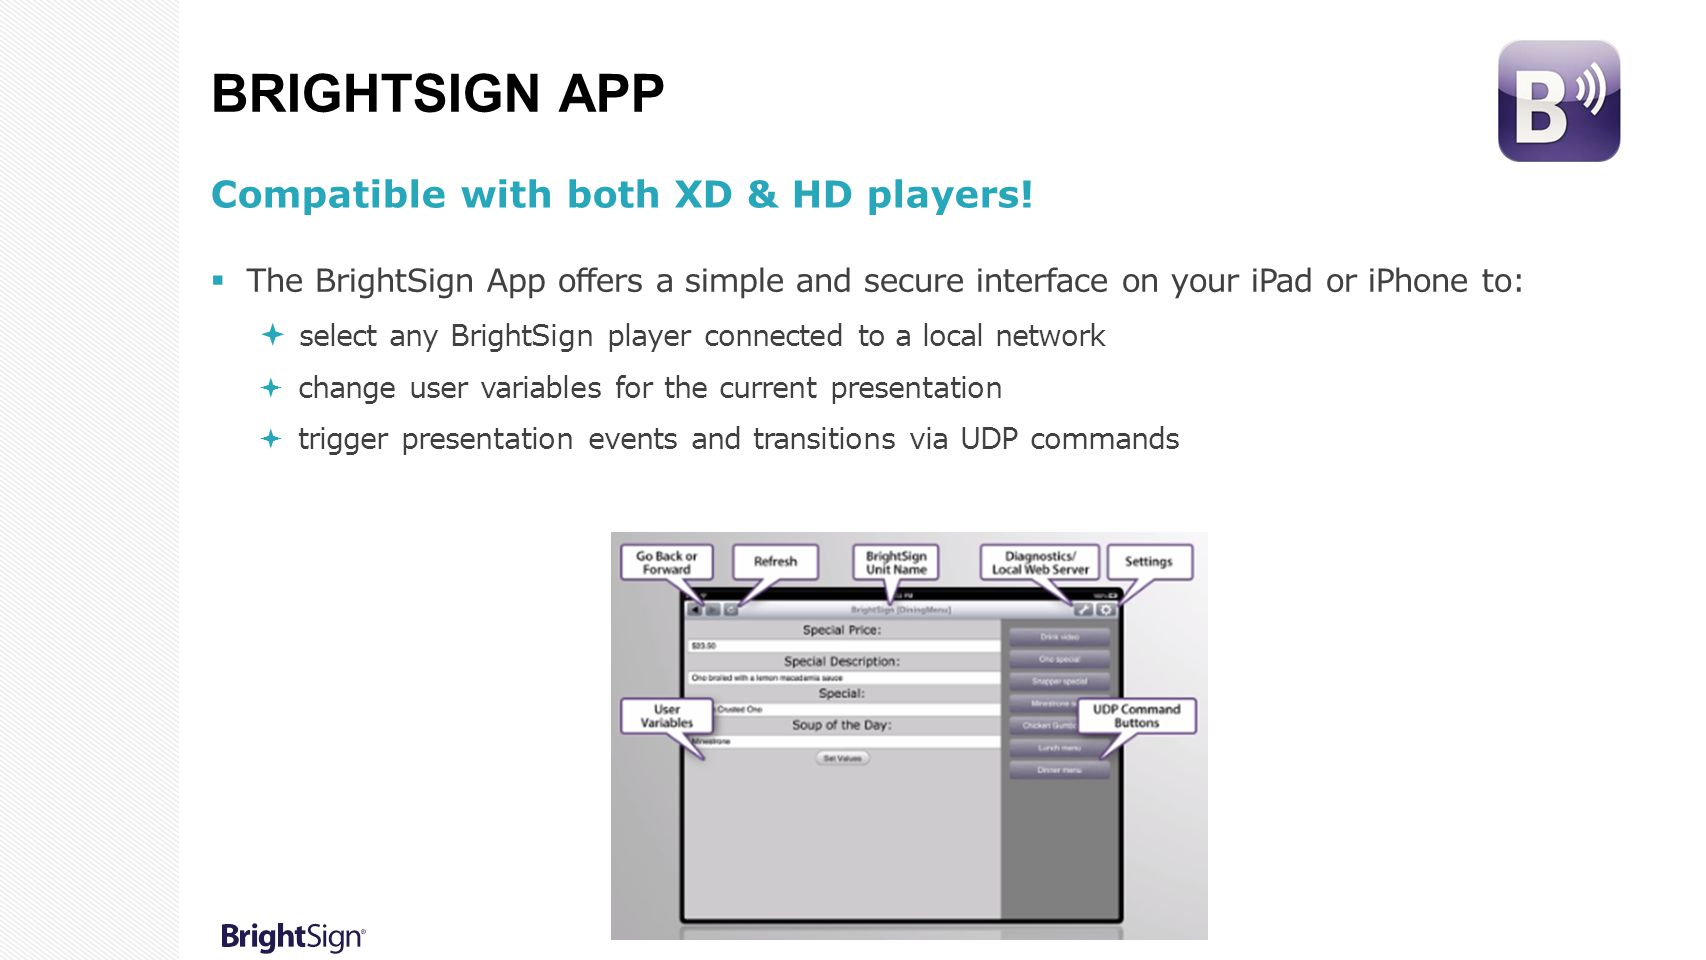 BrightSign App Compatible with both XD & HD players!